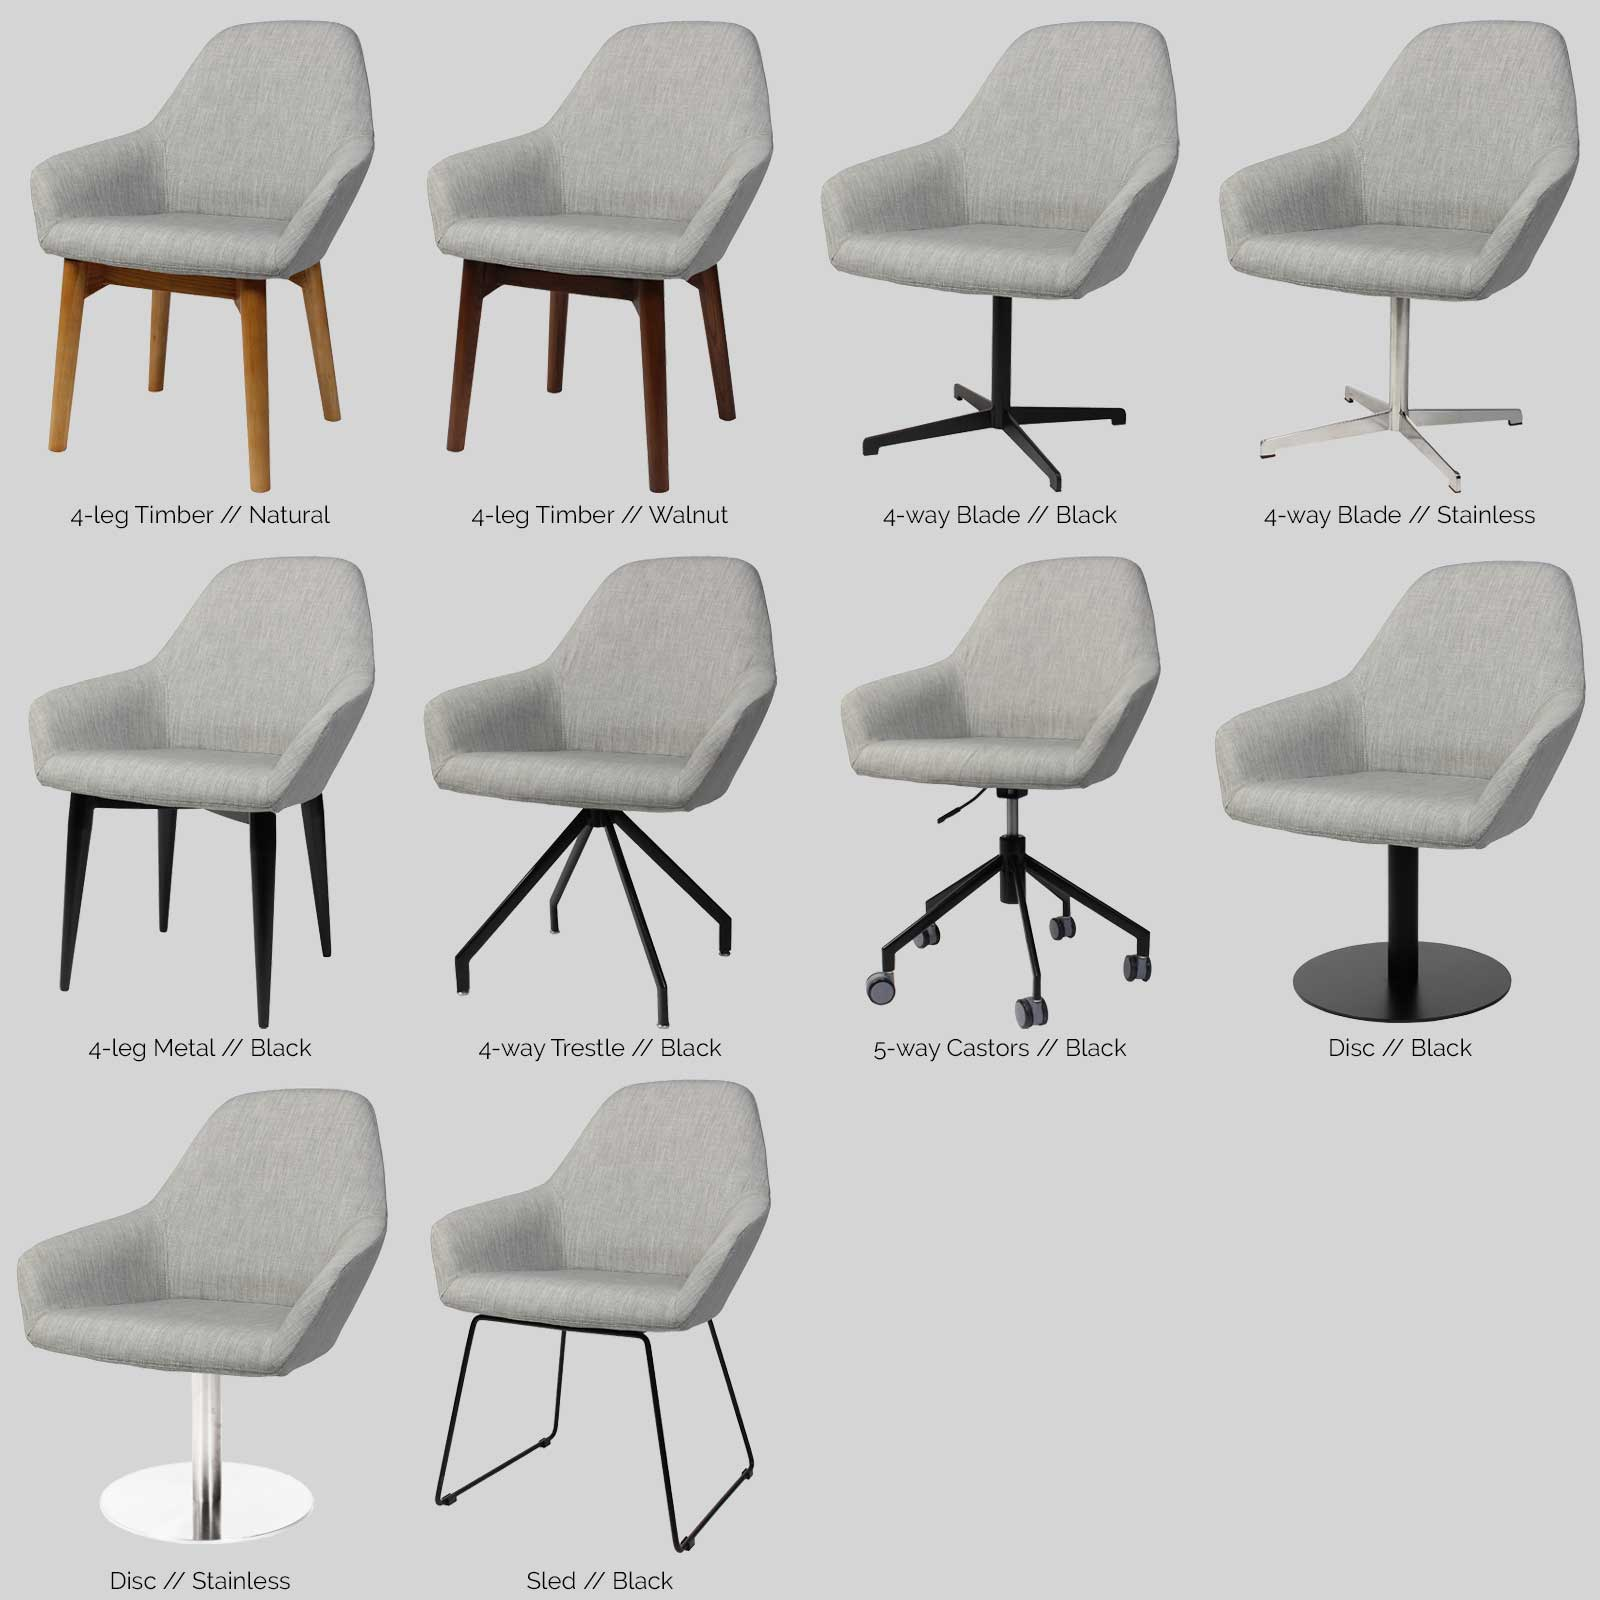 Tub Chair Selections | Furniture for Hospitality & Commercial ...